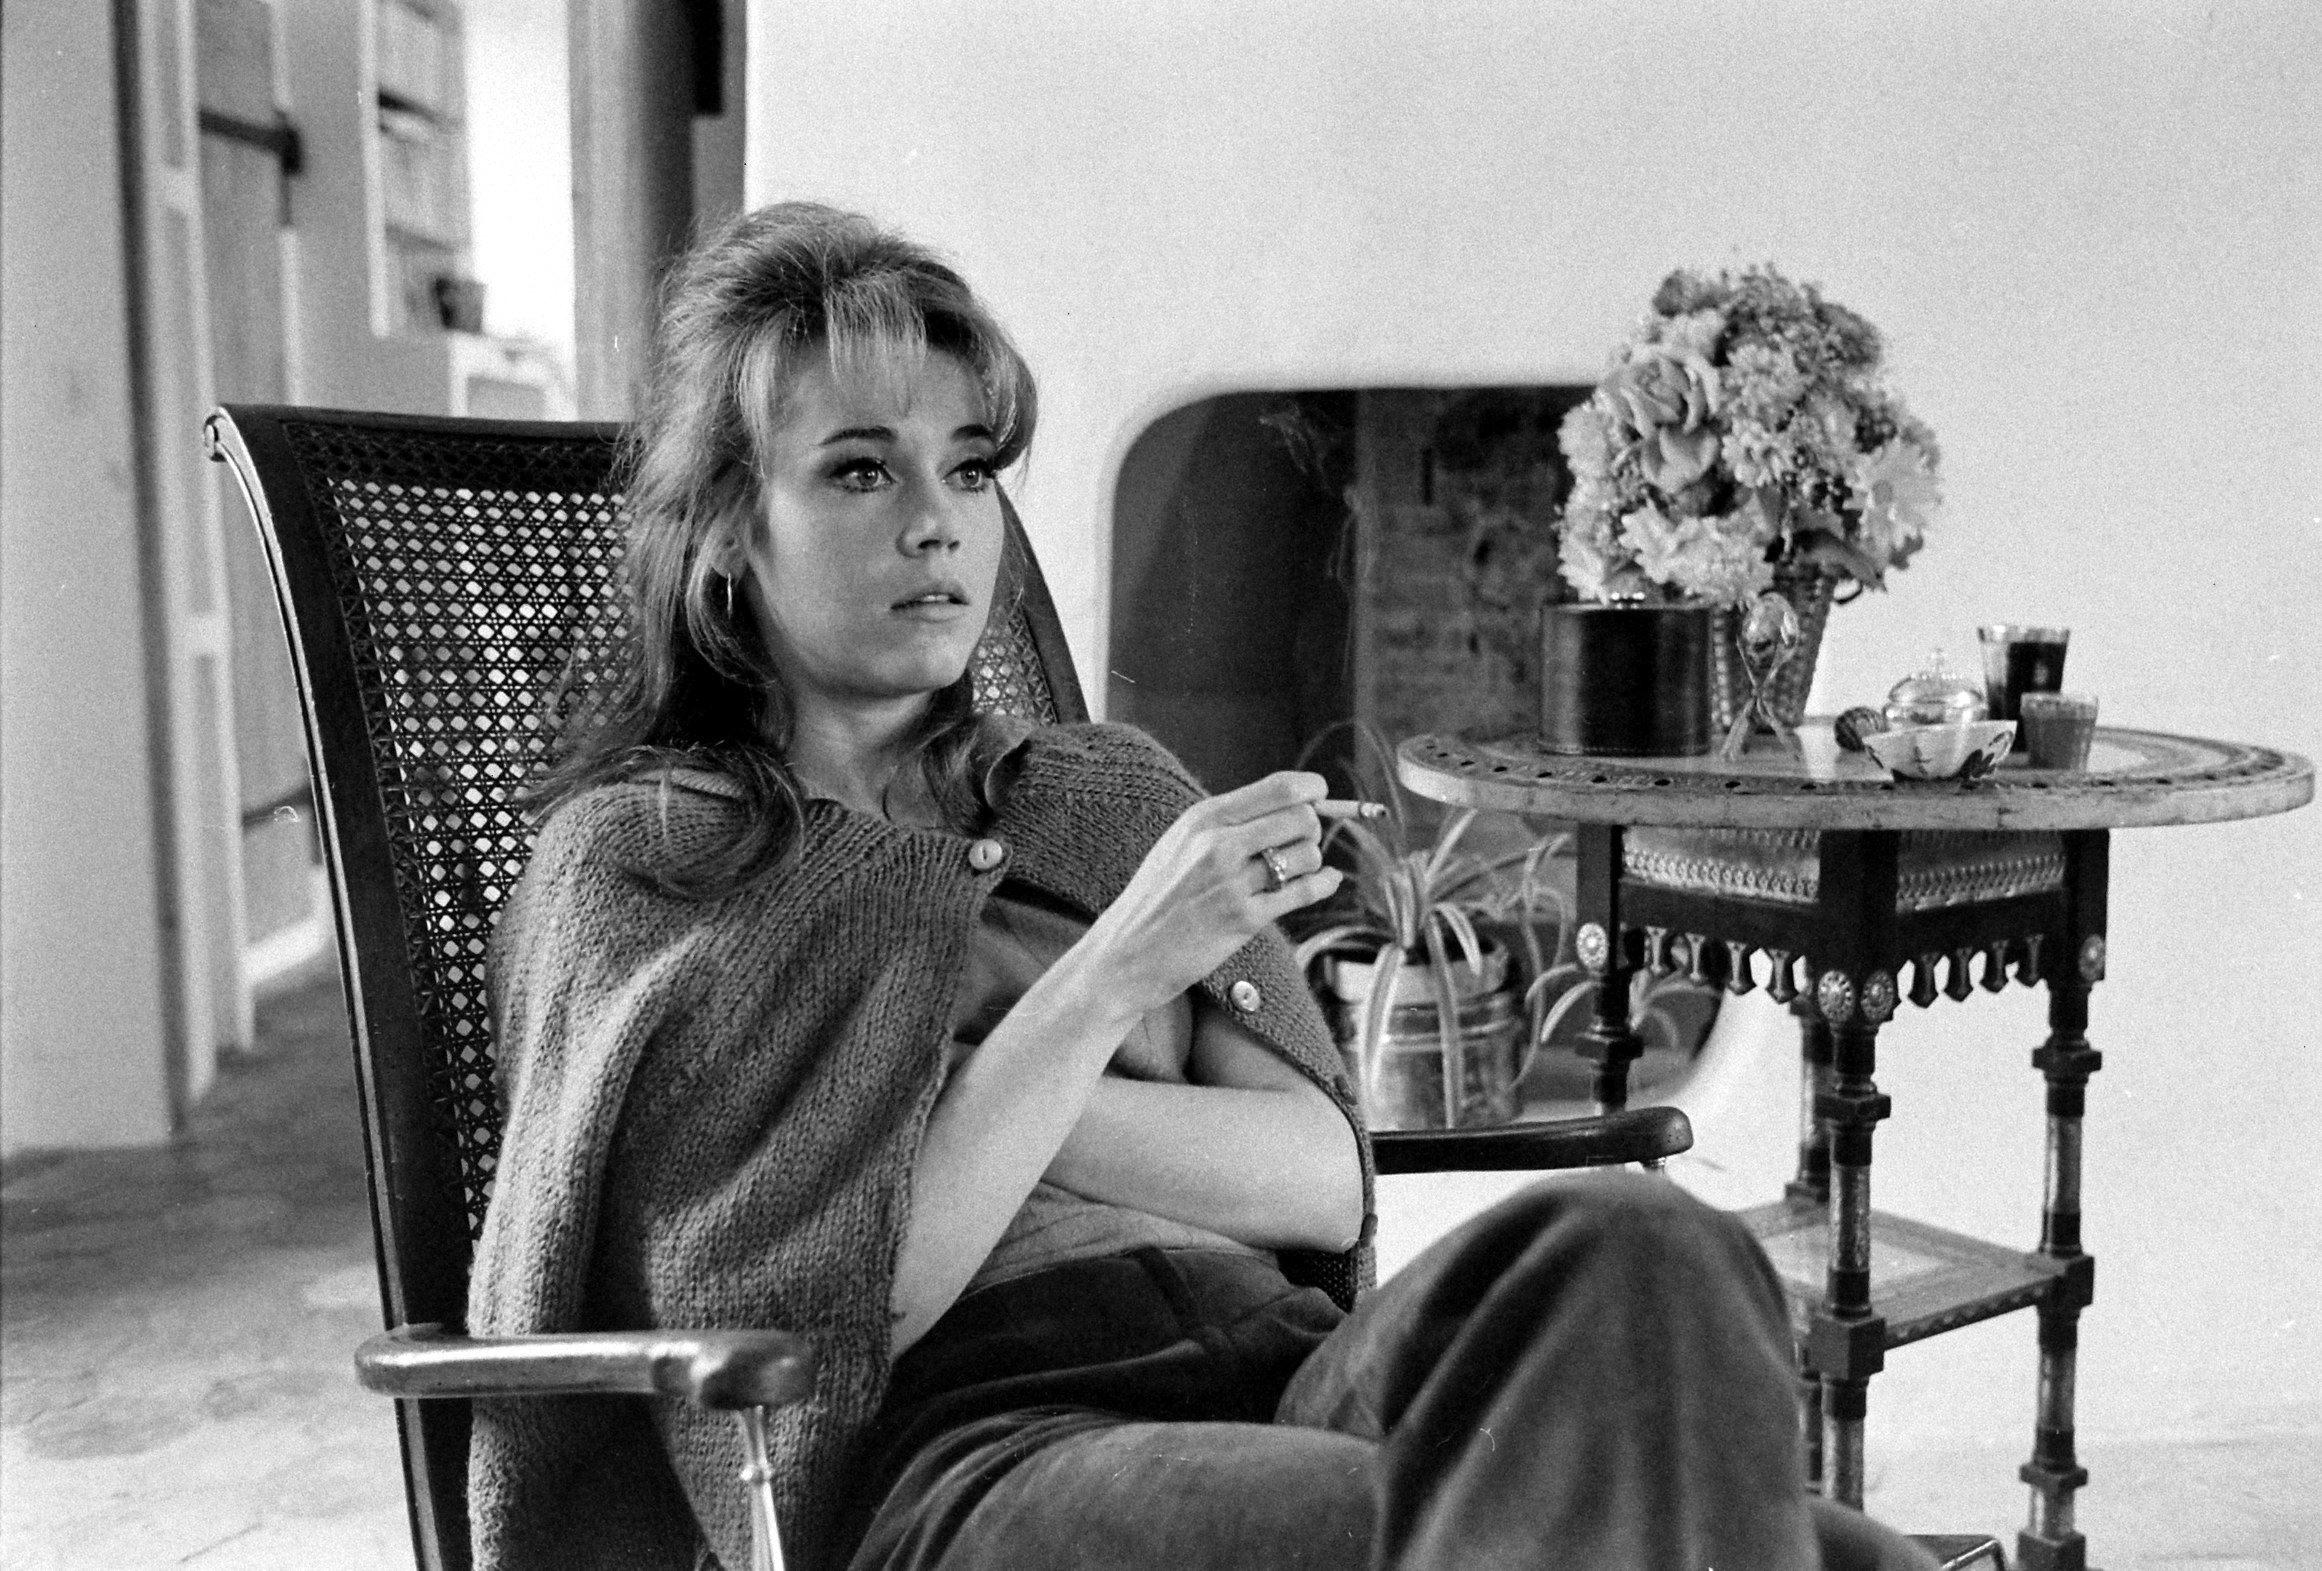 Young Jane sitting in a chair and holding a cigarette